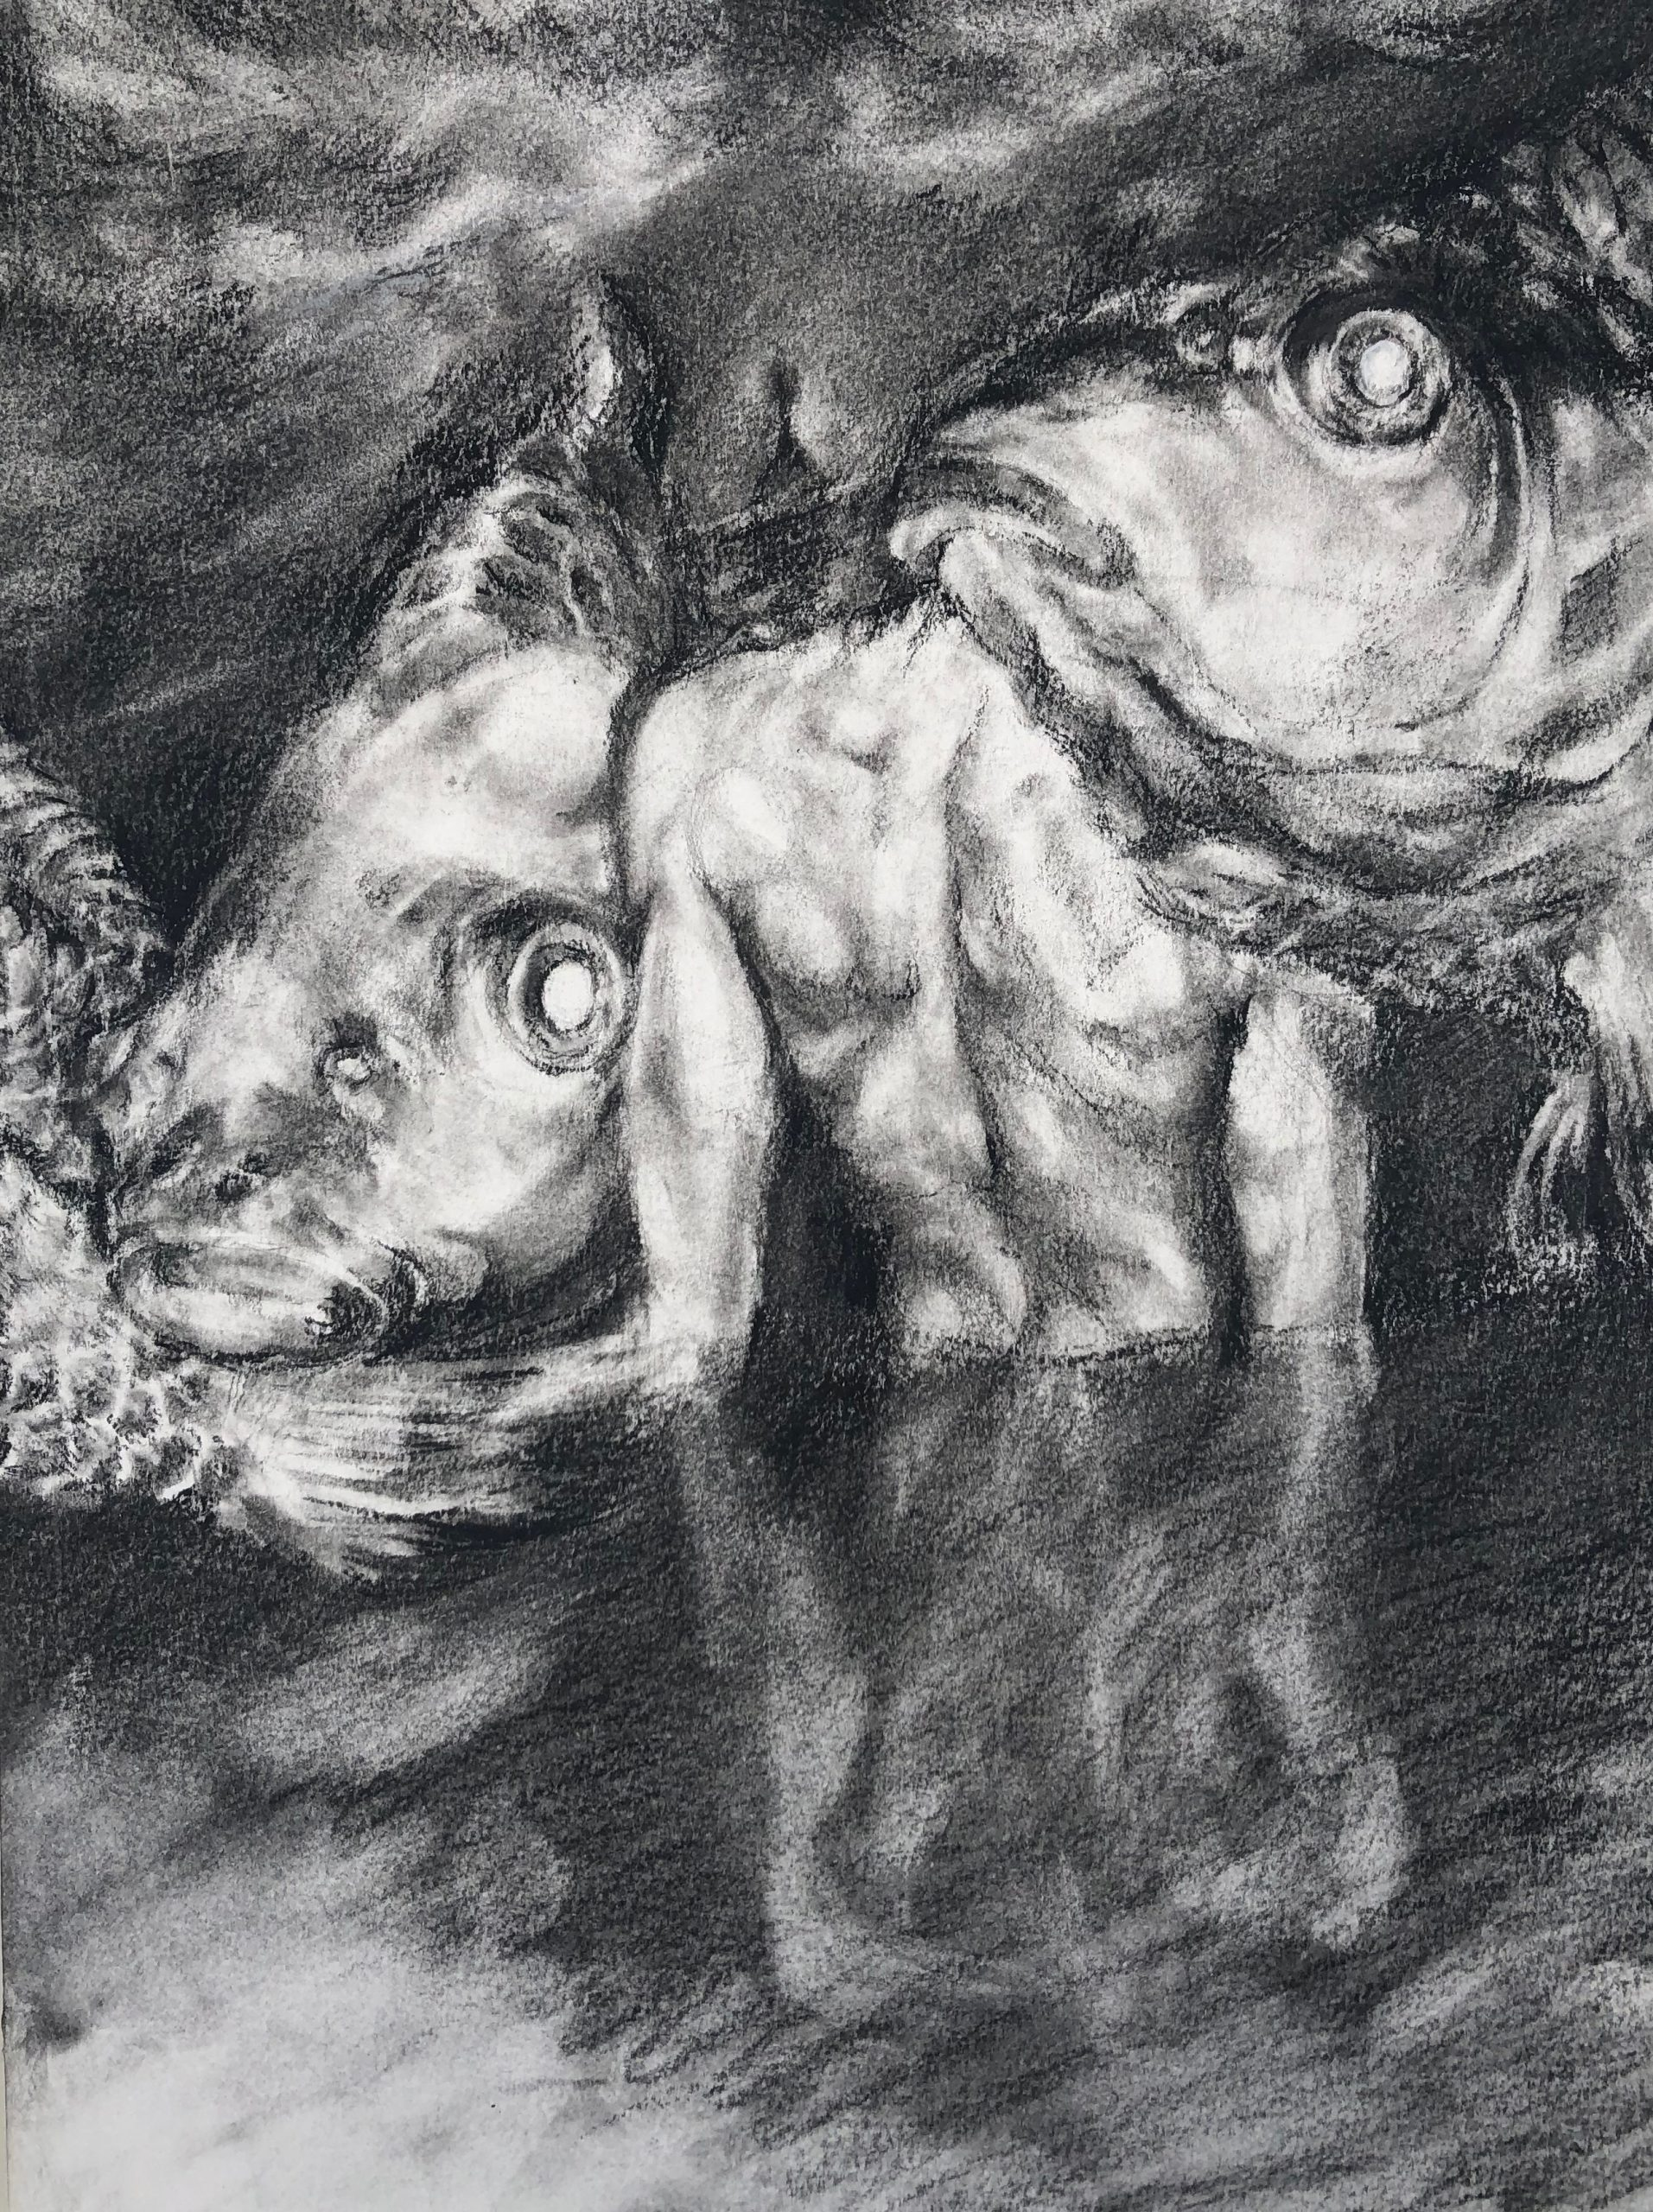 A charcoal drawing of a person in the water between two fishes.